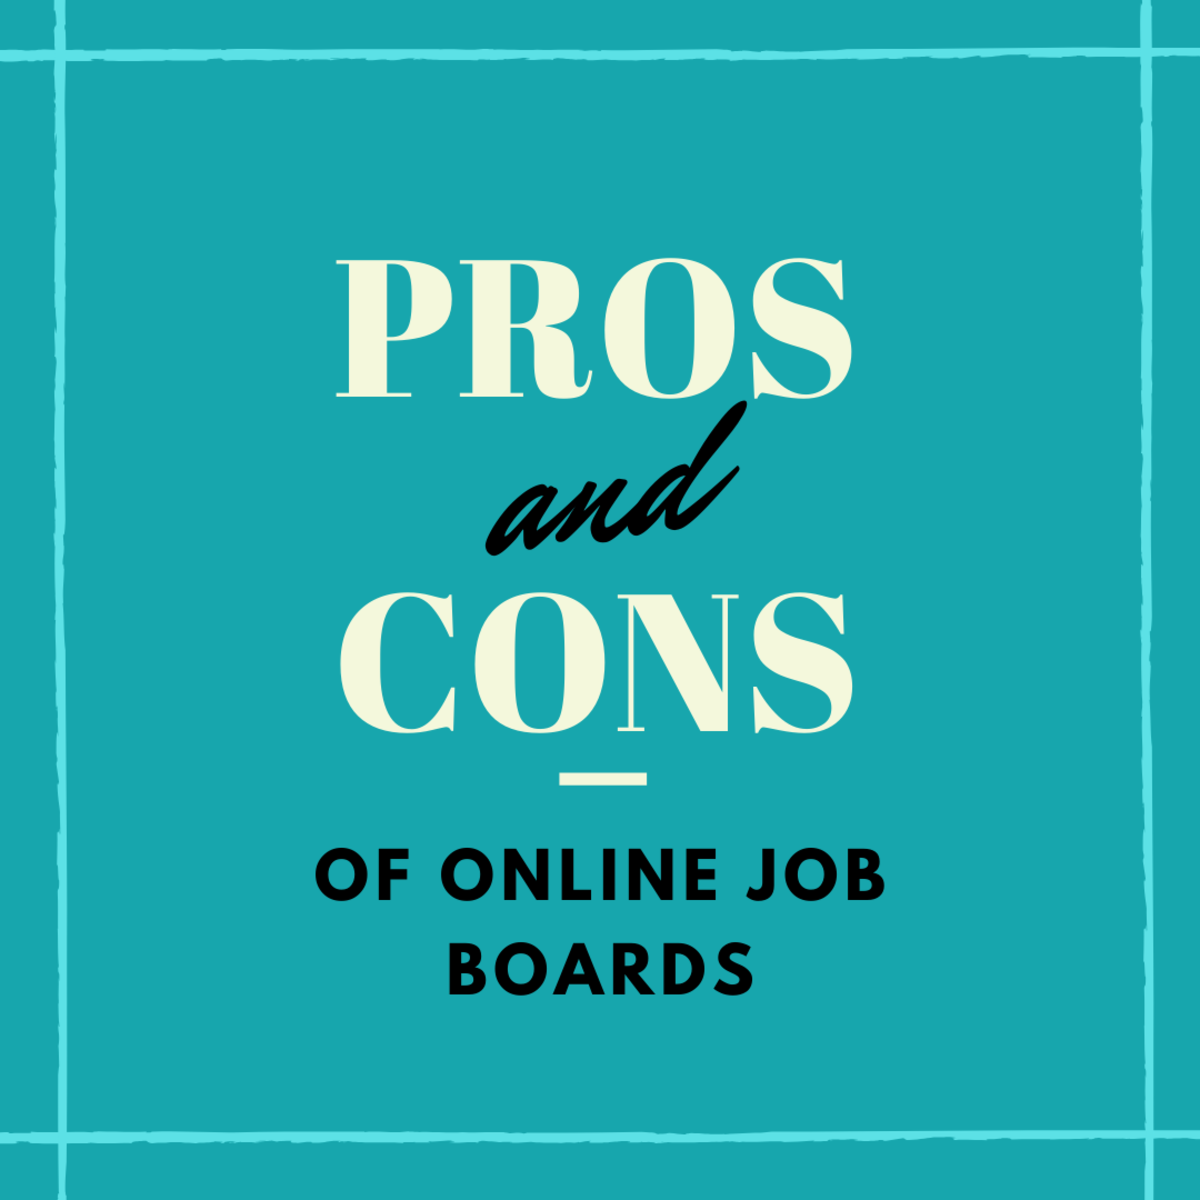 Learn about the benefits and drawbacks of using online job boards during your job search.